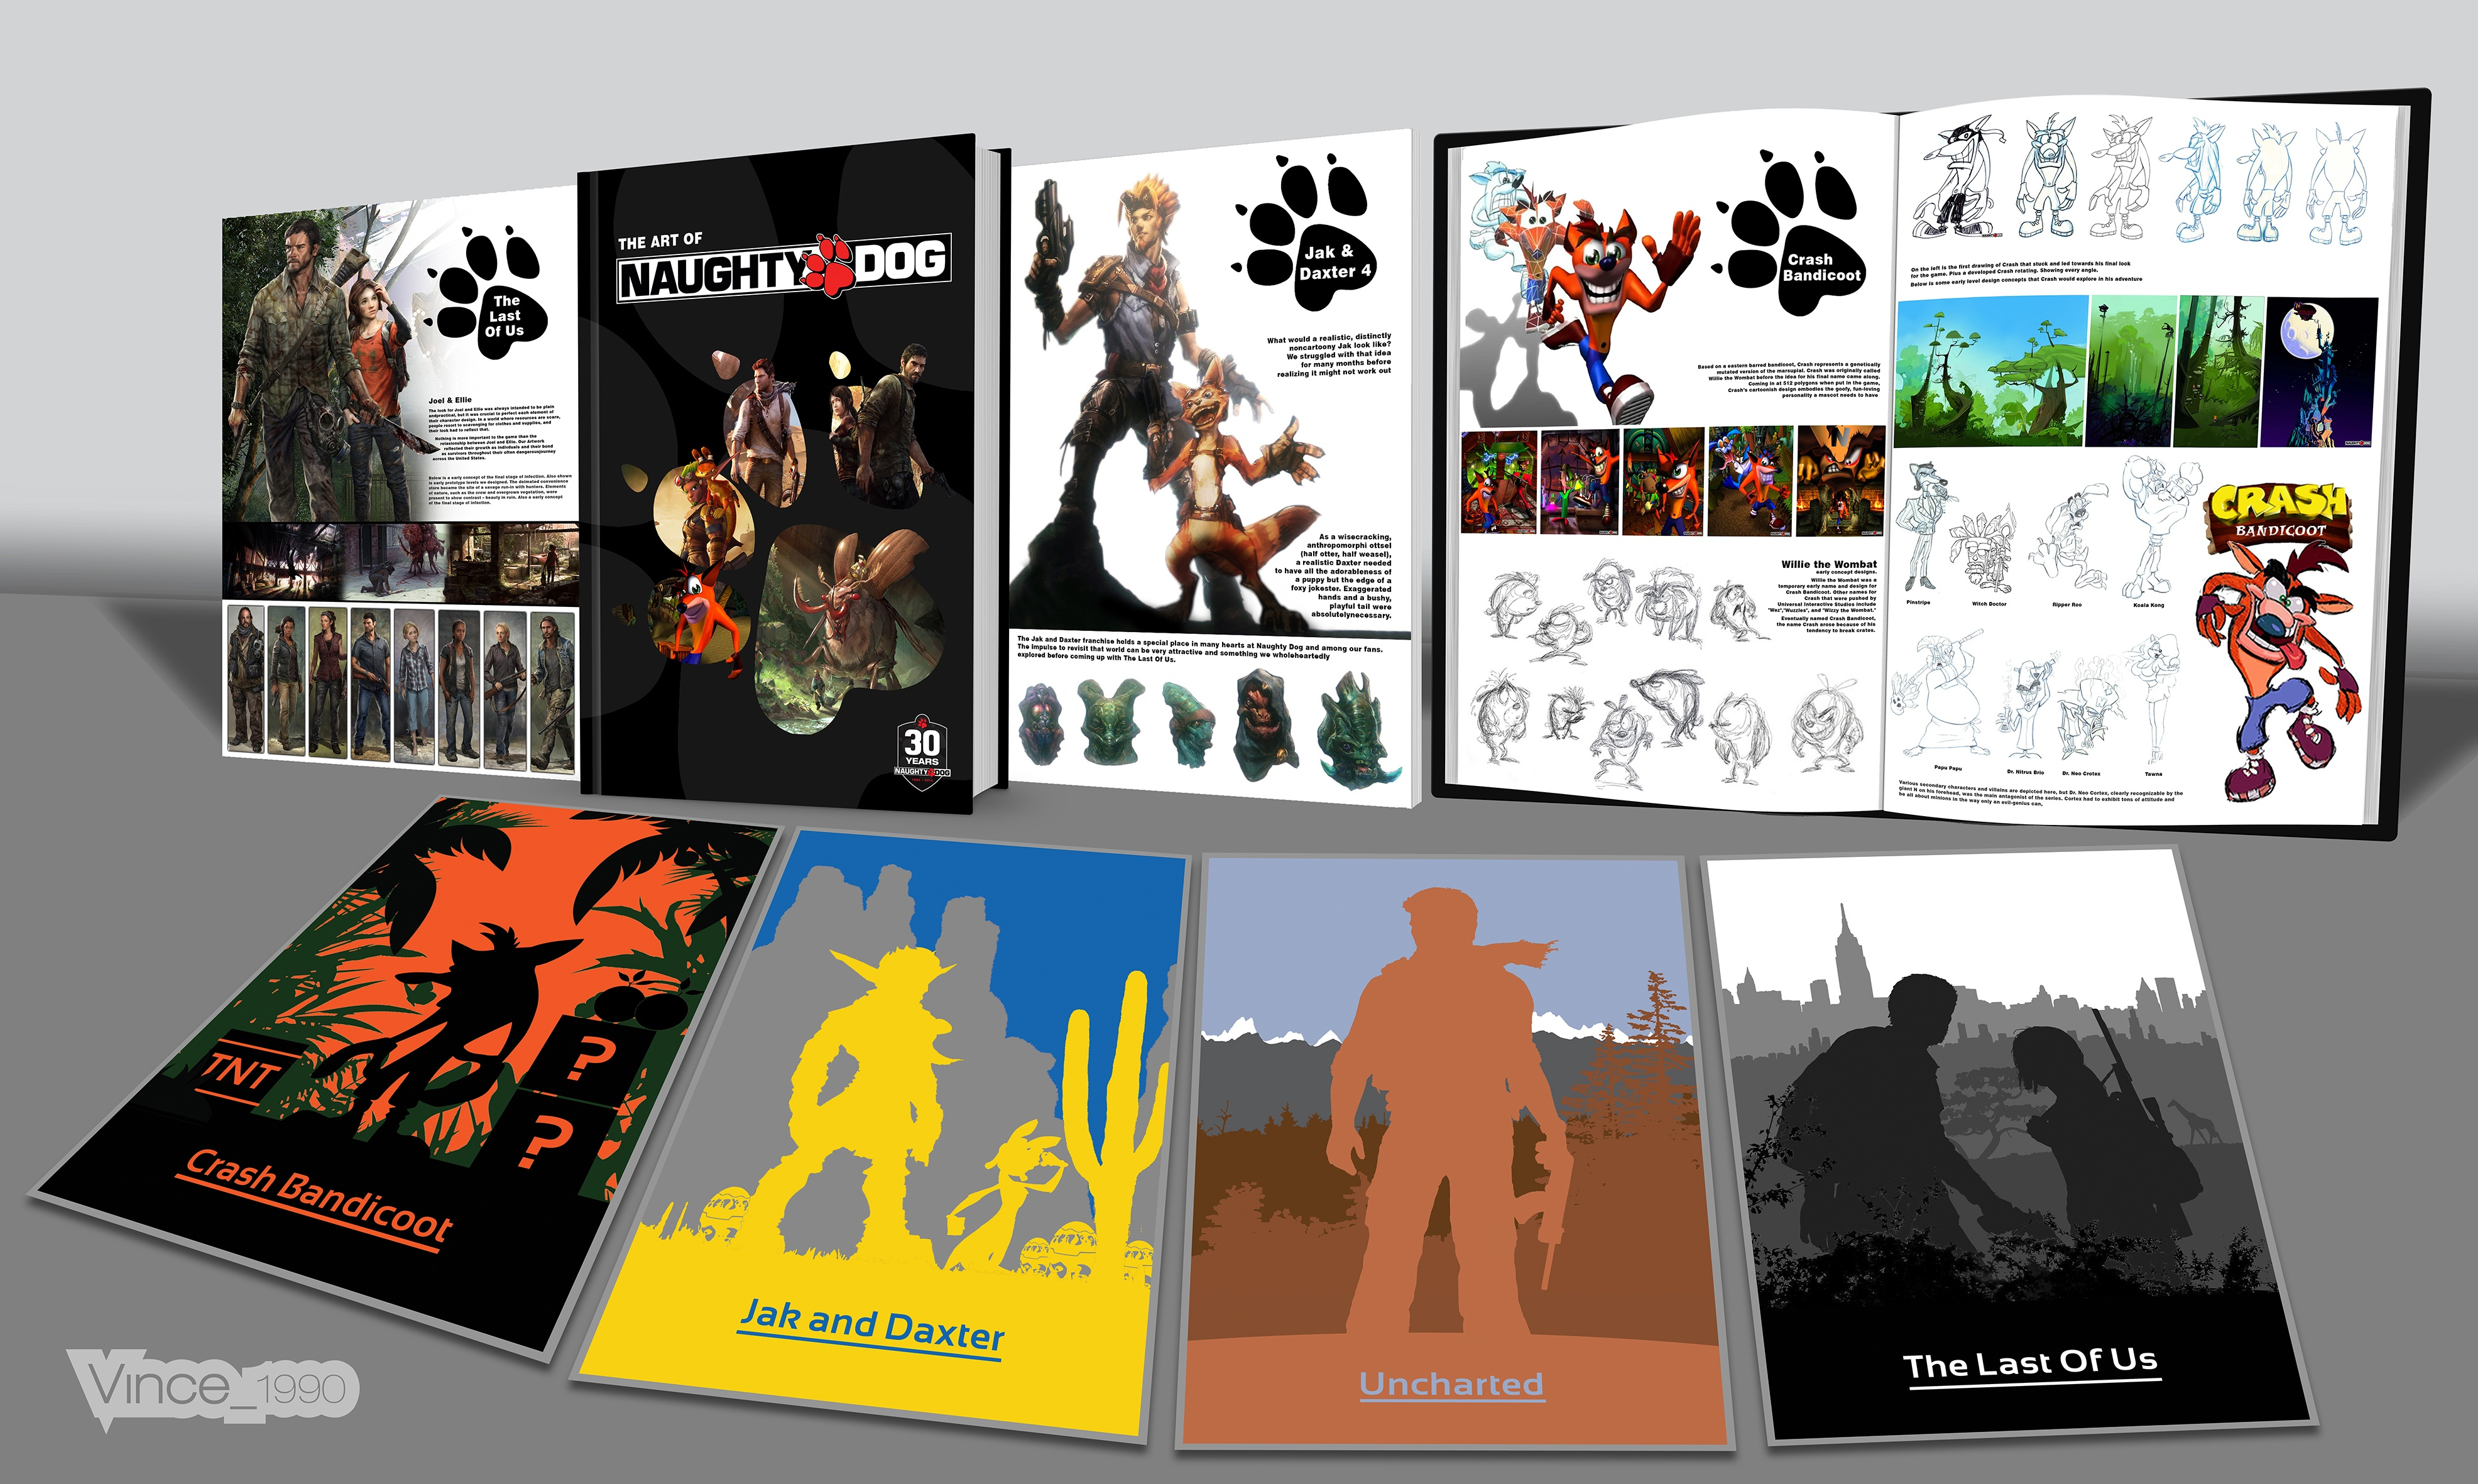 The Art Of Naughty Dog box cover